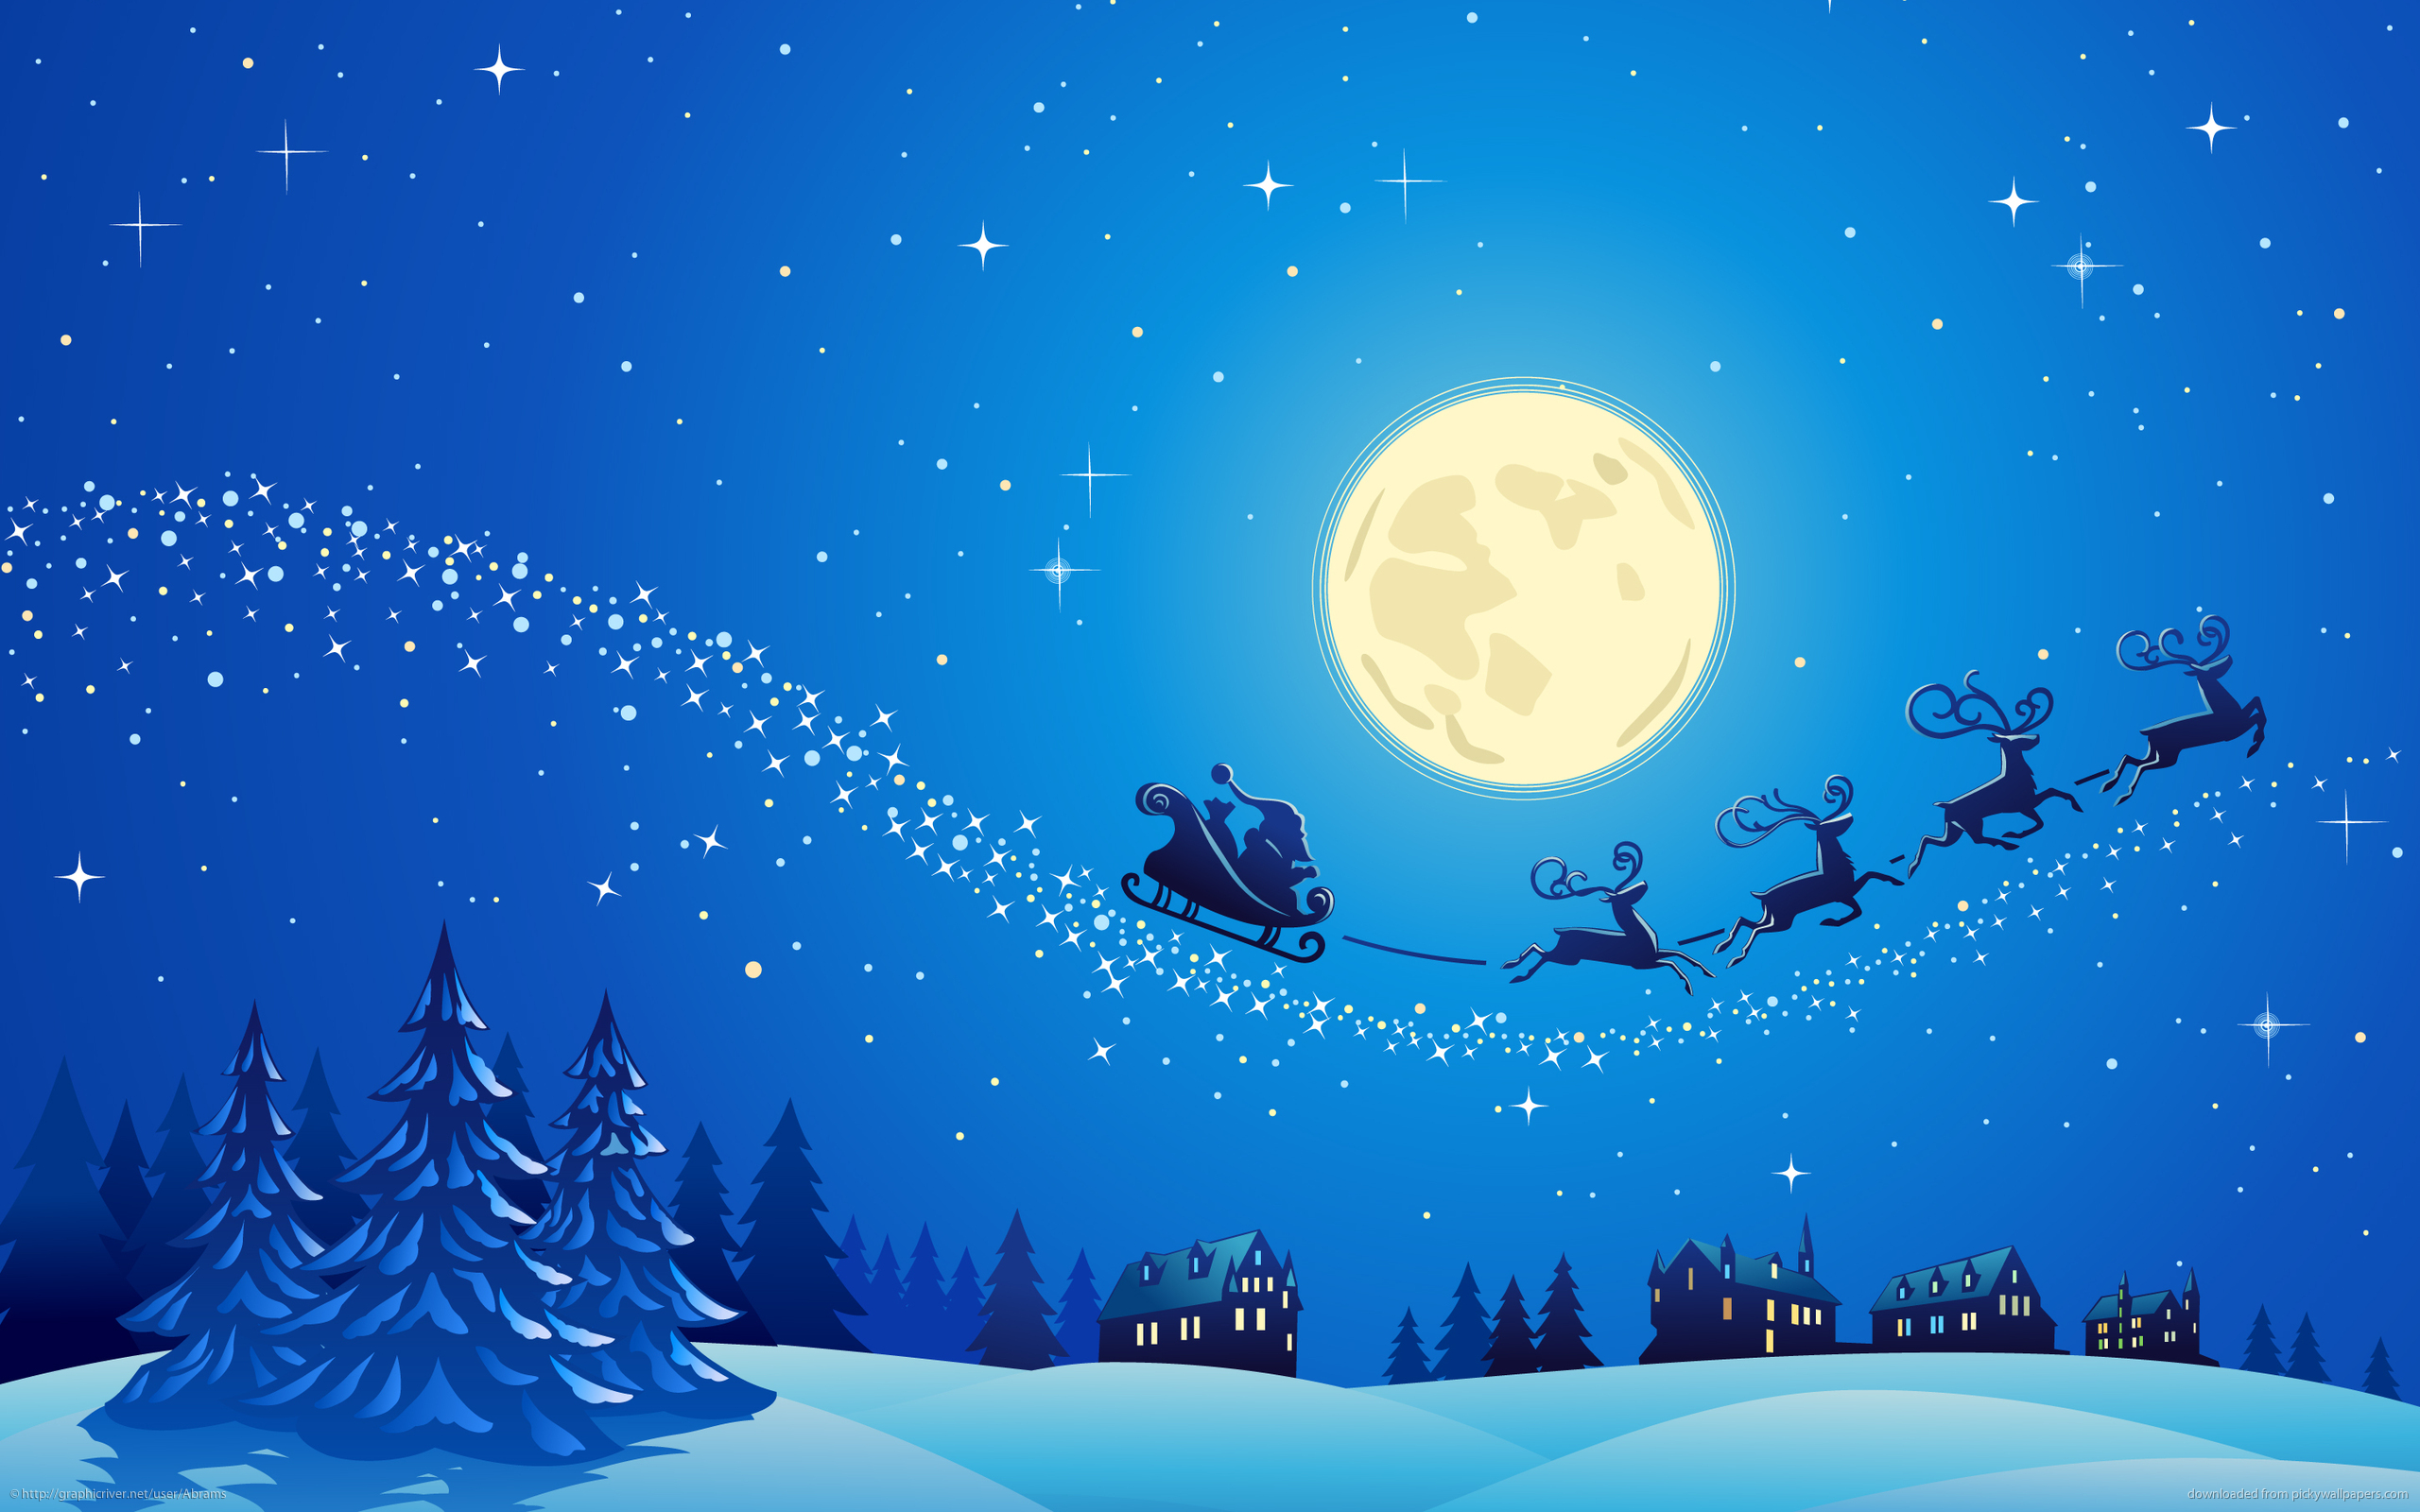 Free Download Cute Christmas Backgrounds Download 2560x1600